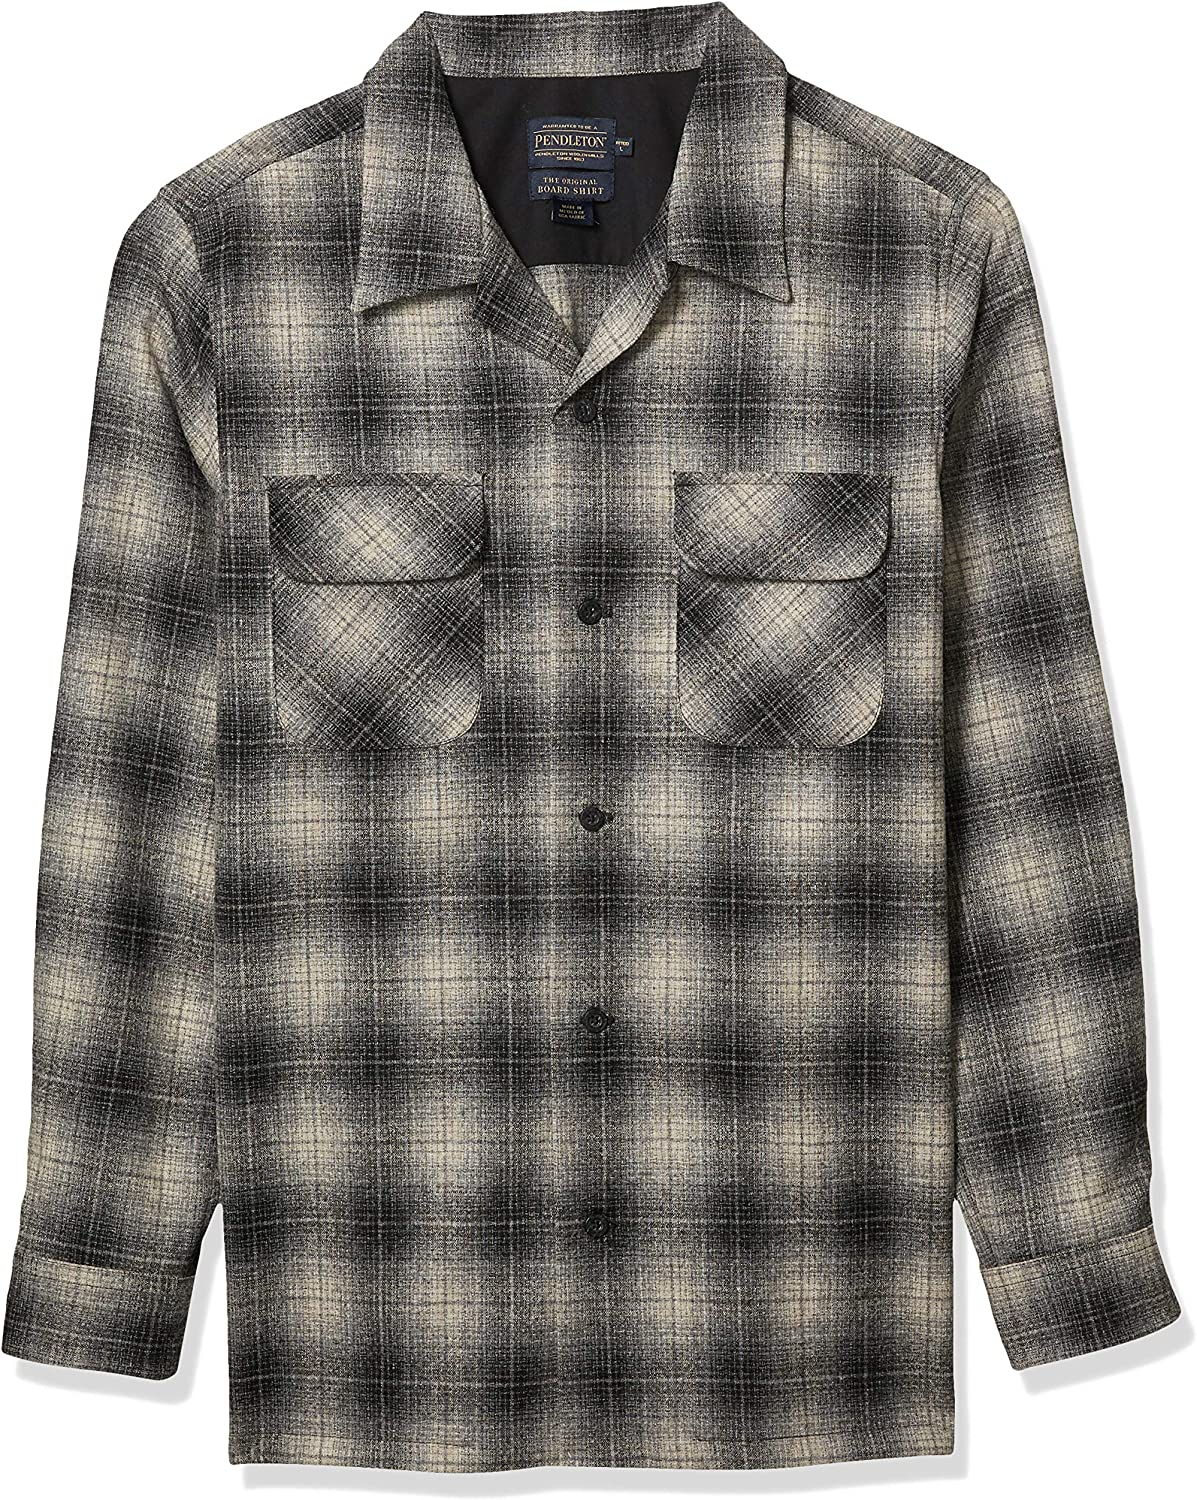 1940s Men's Shirts, Sweaters, Vests Pendleton Mens Long Sleeve Fitted Board Shirt $149.00 AT vintagedancer.com